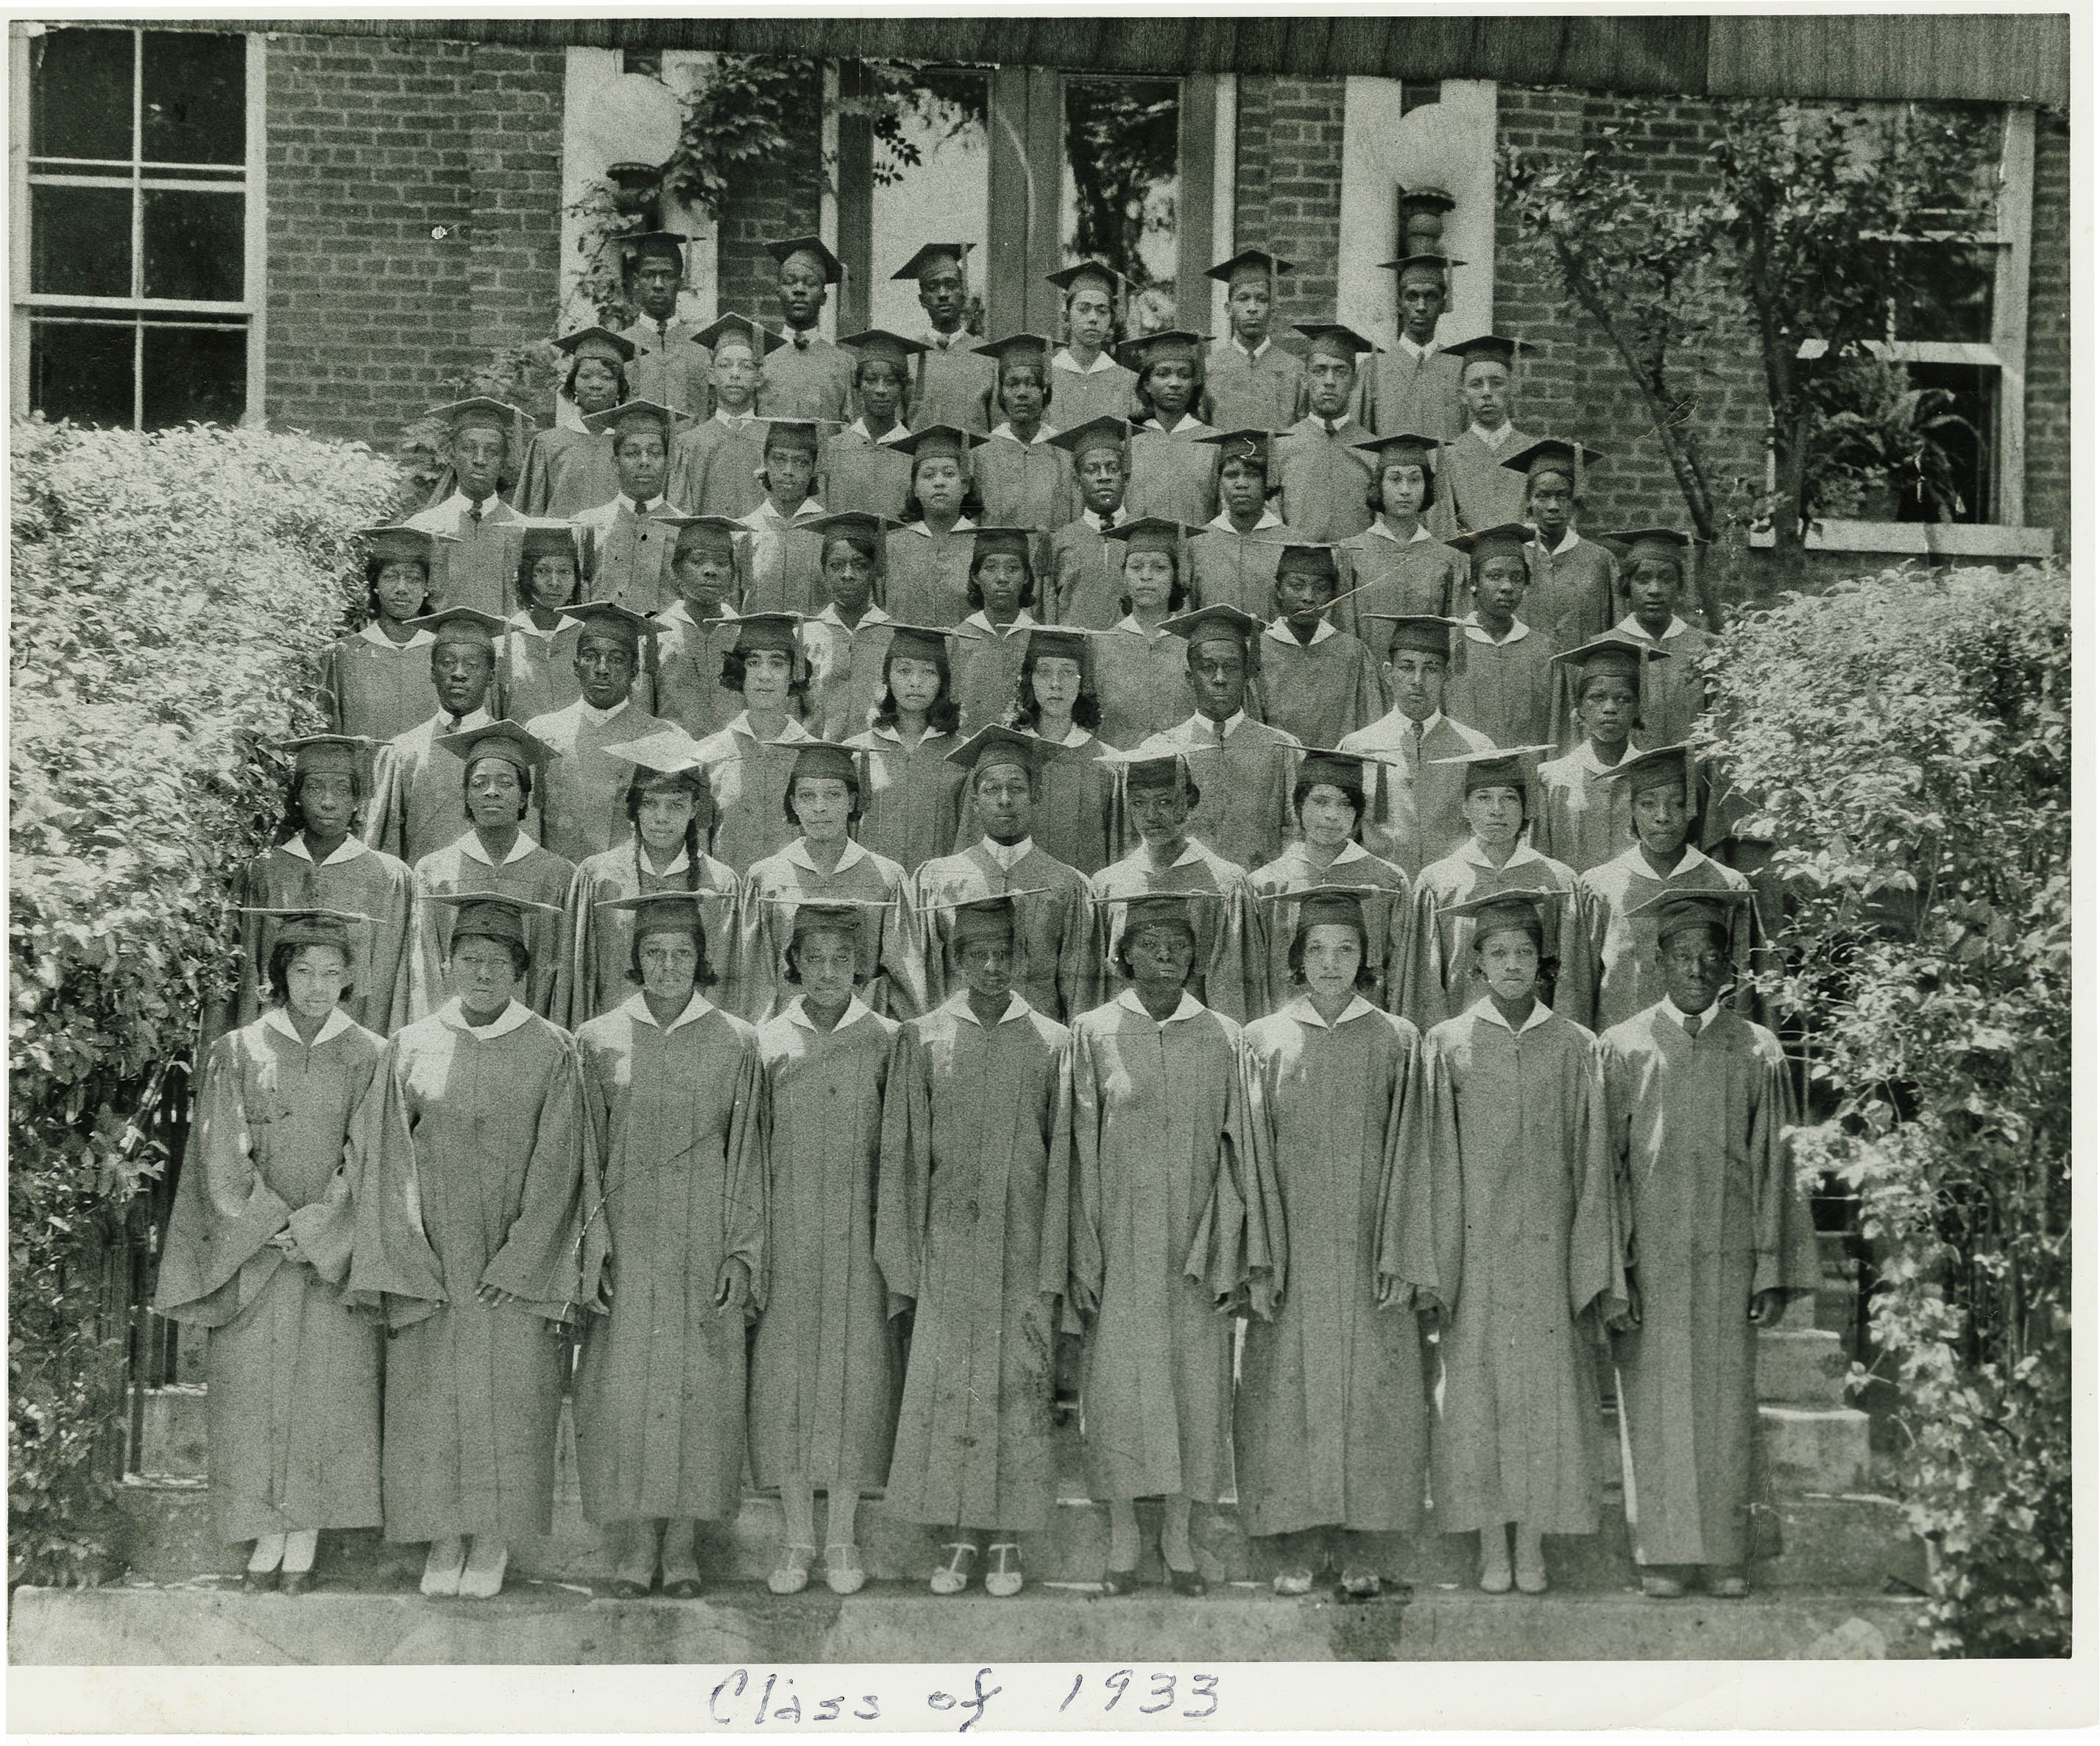 Class of 1933 Avery Graduation Picture